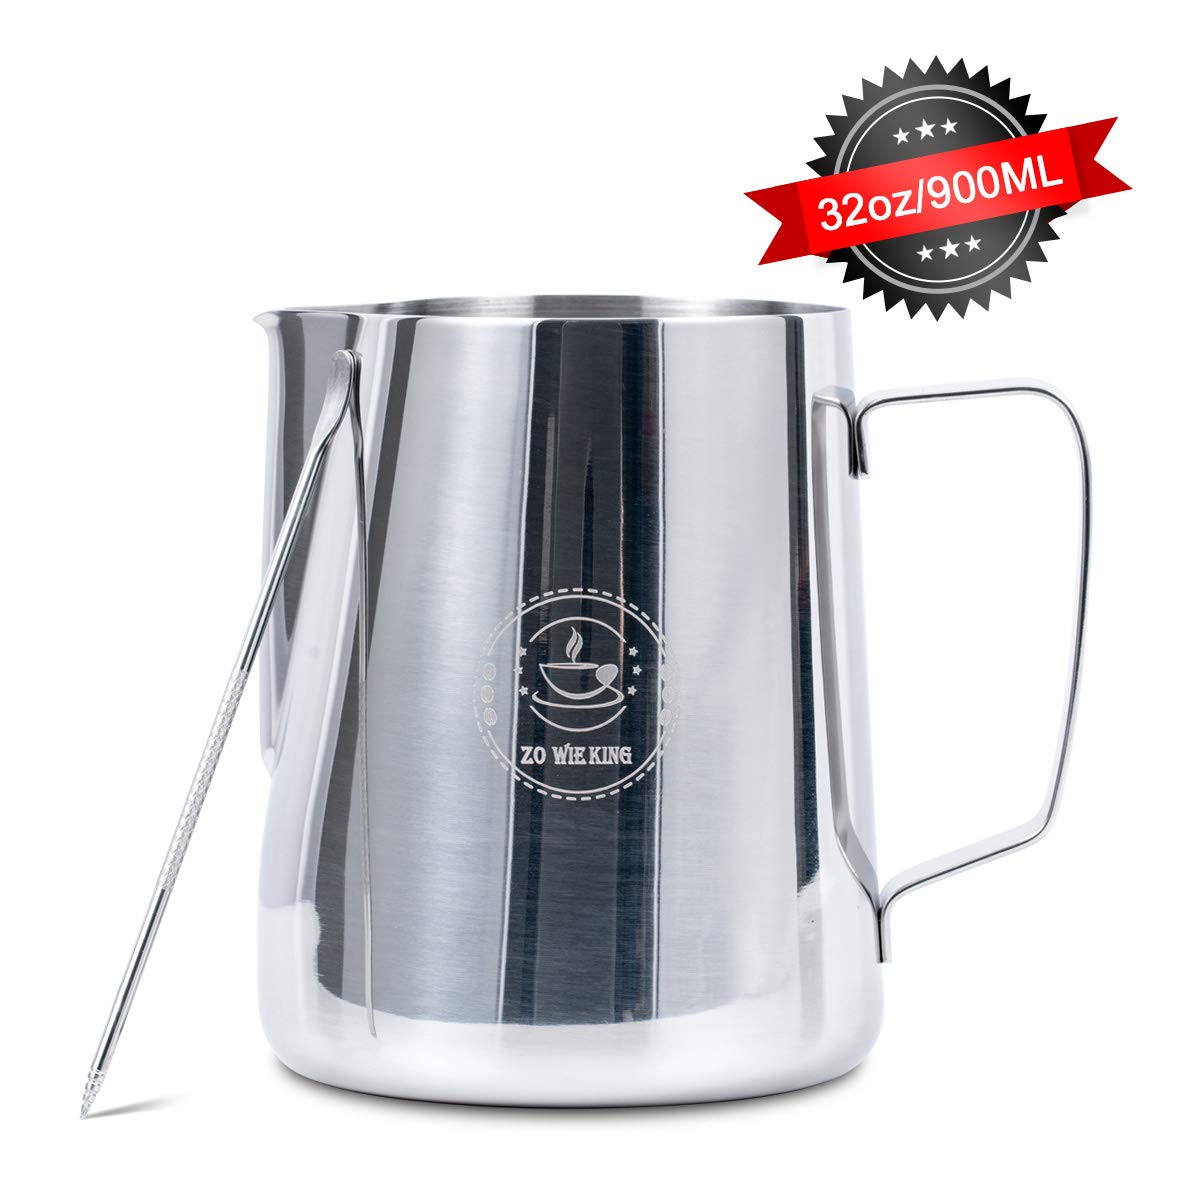 Milk Frothing Pitcher Coffee Tool with Latte Art Pen, Stainless Steel Steaming Pitcher Milk Frothing Coffee Cup 32oz 900ml for Espresso Cappuccino Coffee Latte Art